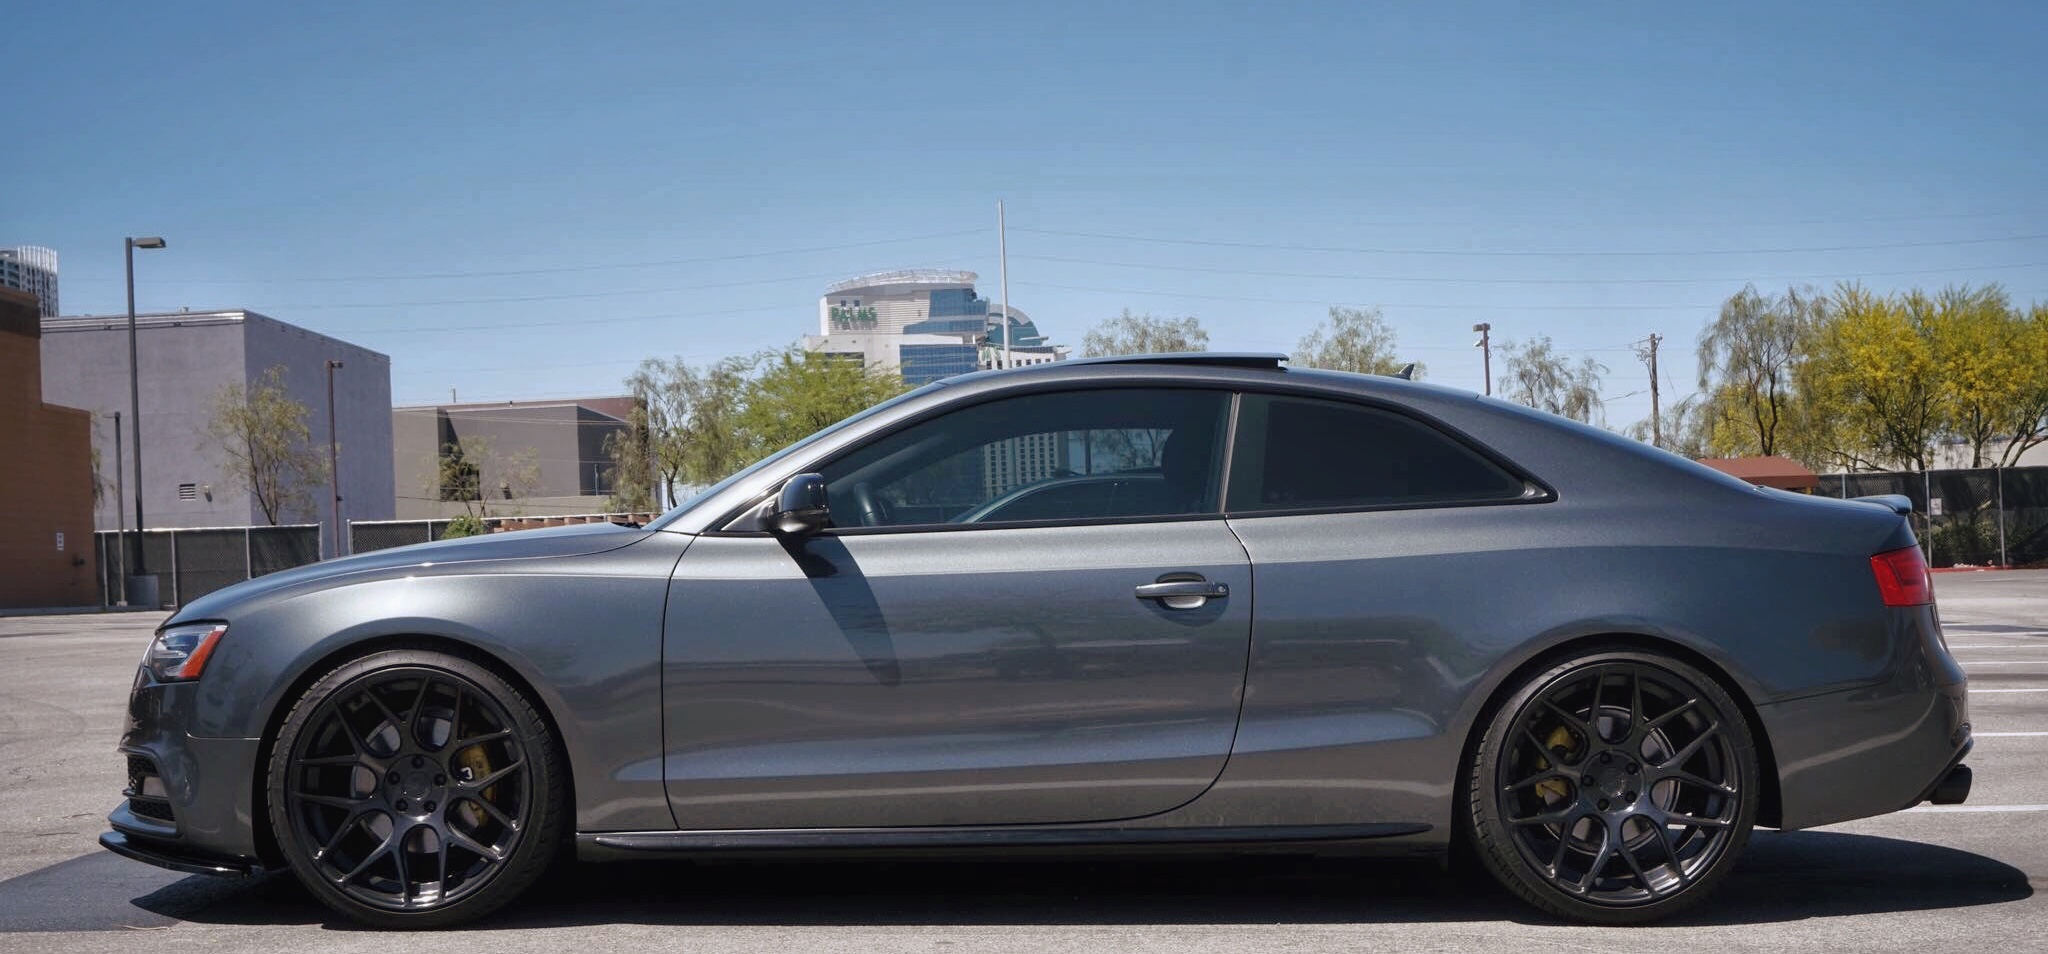 euro white shows coverage socal meets event blog on car tag htm audi img motorsports big zshow